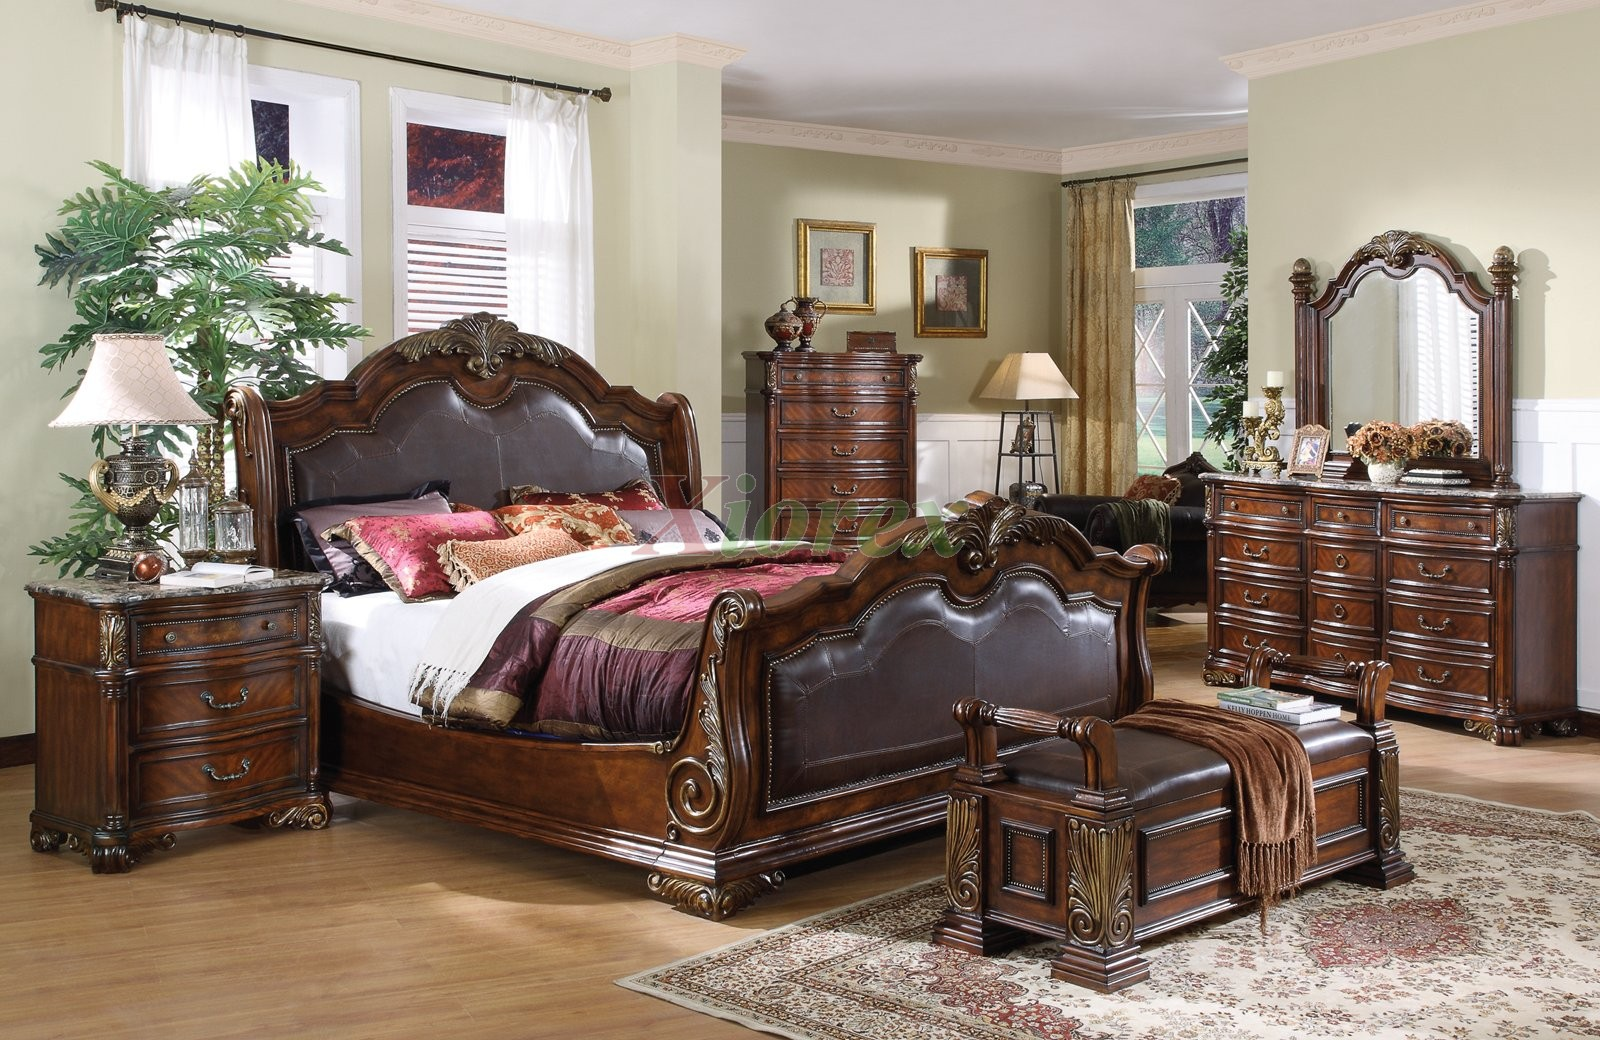 https://www.xiorex.com/media/catalog/product/cache/1/image/ce917ae61abb794fb66945dcc312e713/t/r/traditional_sleigh_bedroom_furniture_set_with_leather_headboard_and_footboard_-_tdc0000104-2.jpg